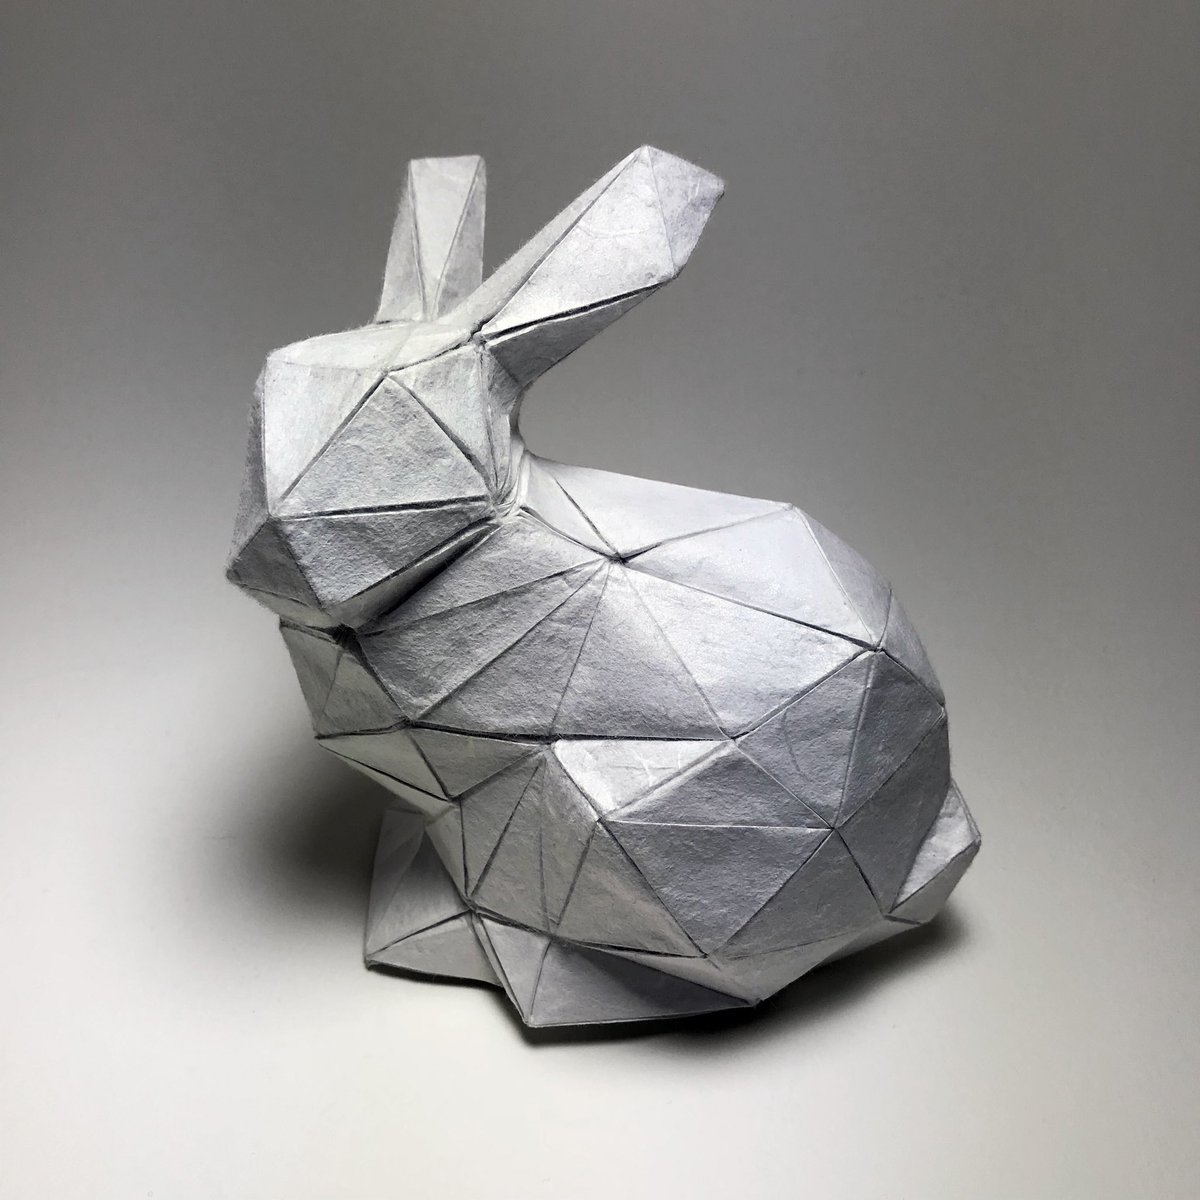 Origami Stanford Bunny Designed With Blender Origamizer By Tomohiro Tachipictwitter A8S2OA4eov